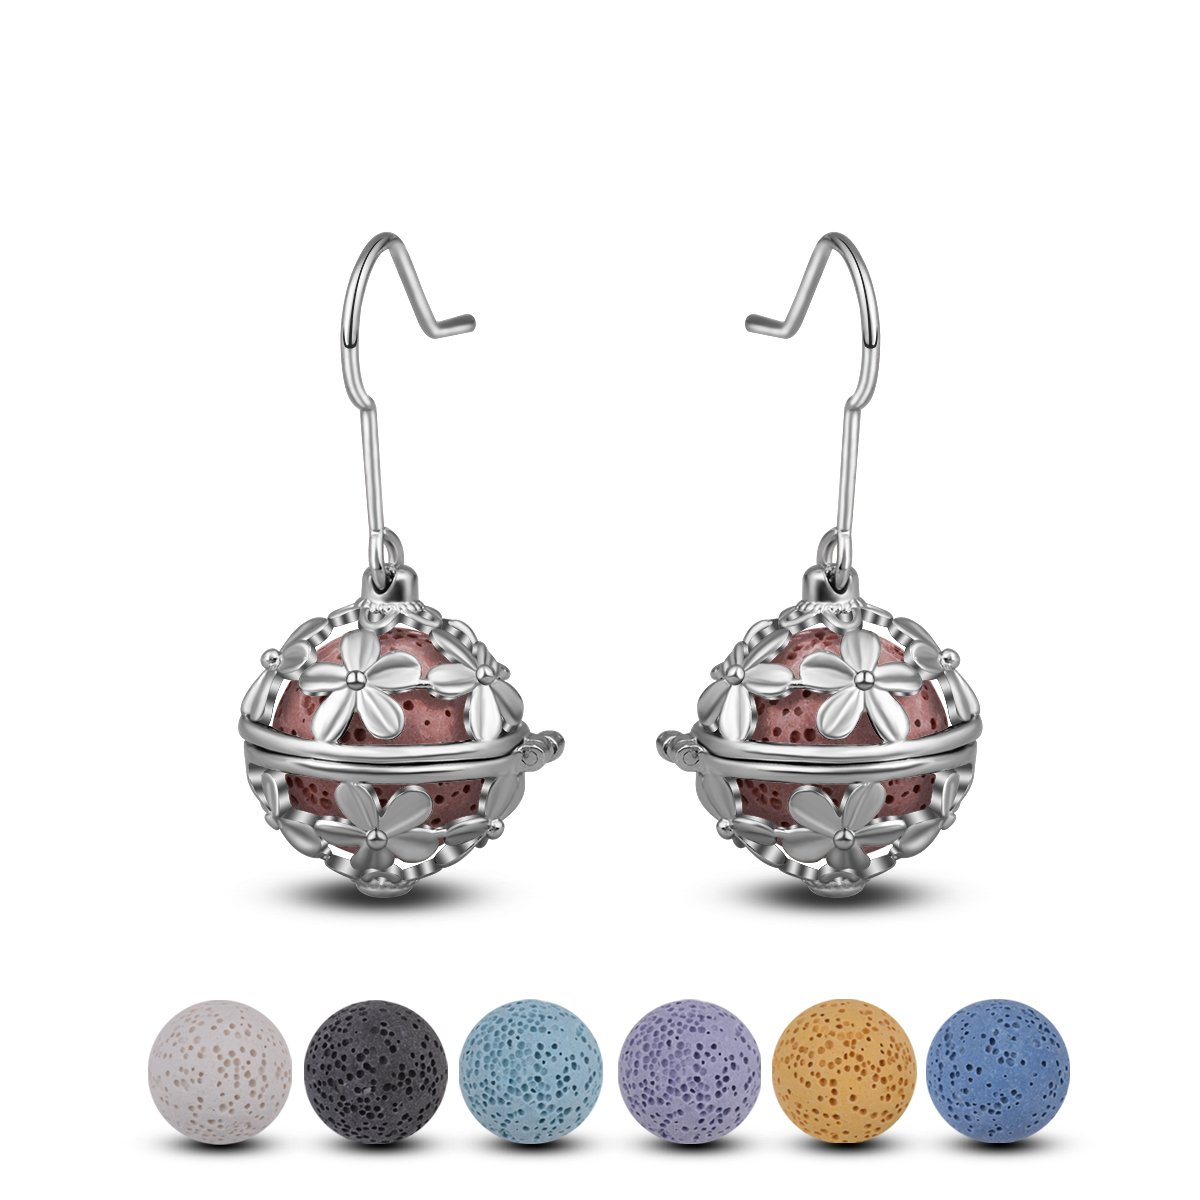 INFUSEU Dangling Earrings Daisy Drop for Women Aromatherapy Essential Oil Diffuser Locket Jewelry + 14 PCS Lava Stone Rock Beads (Silver)